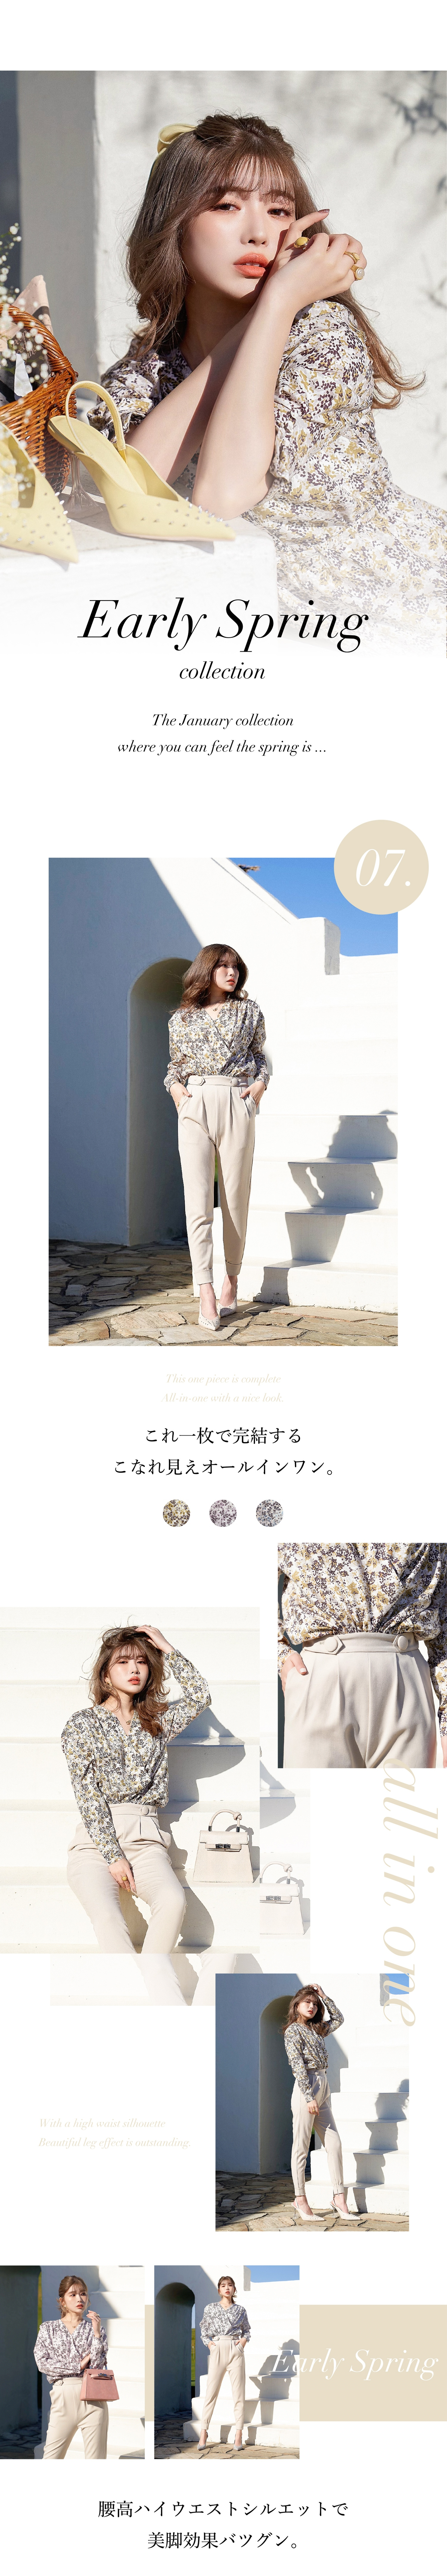 21SS Early Spring 2021新作特集7